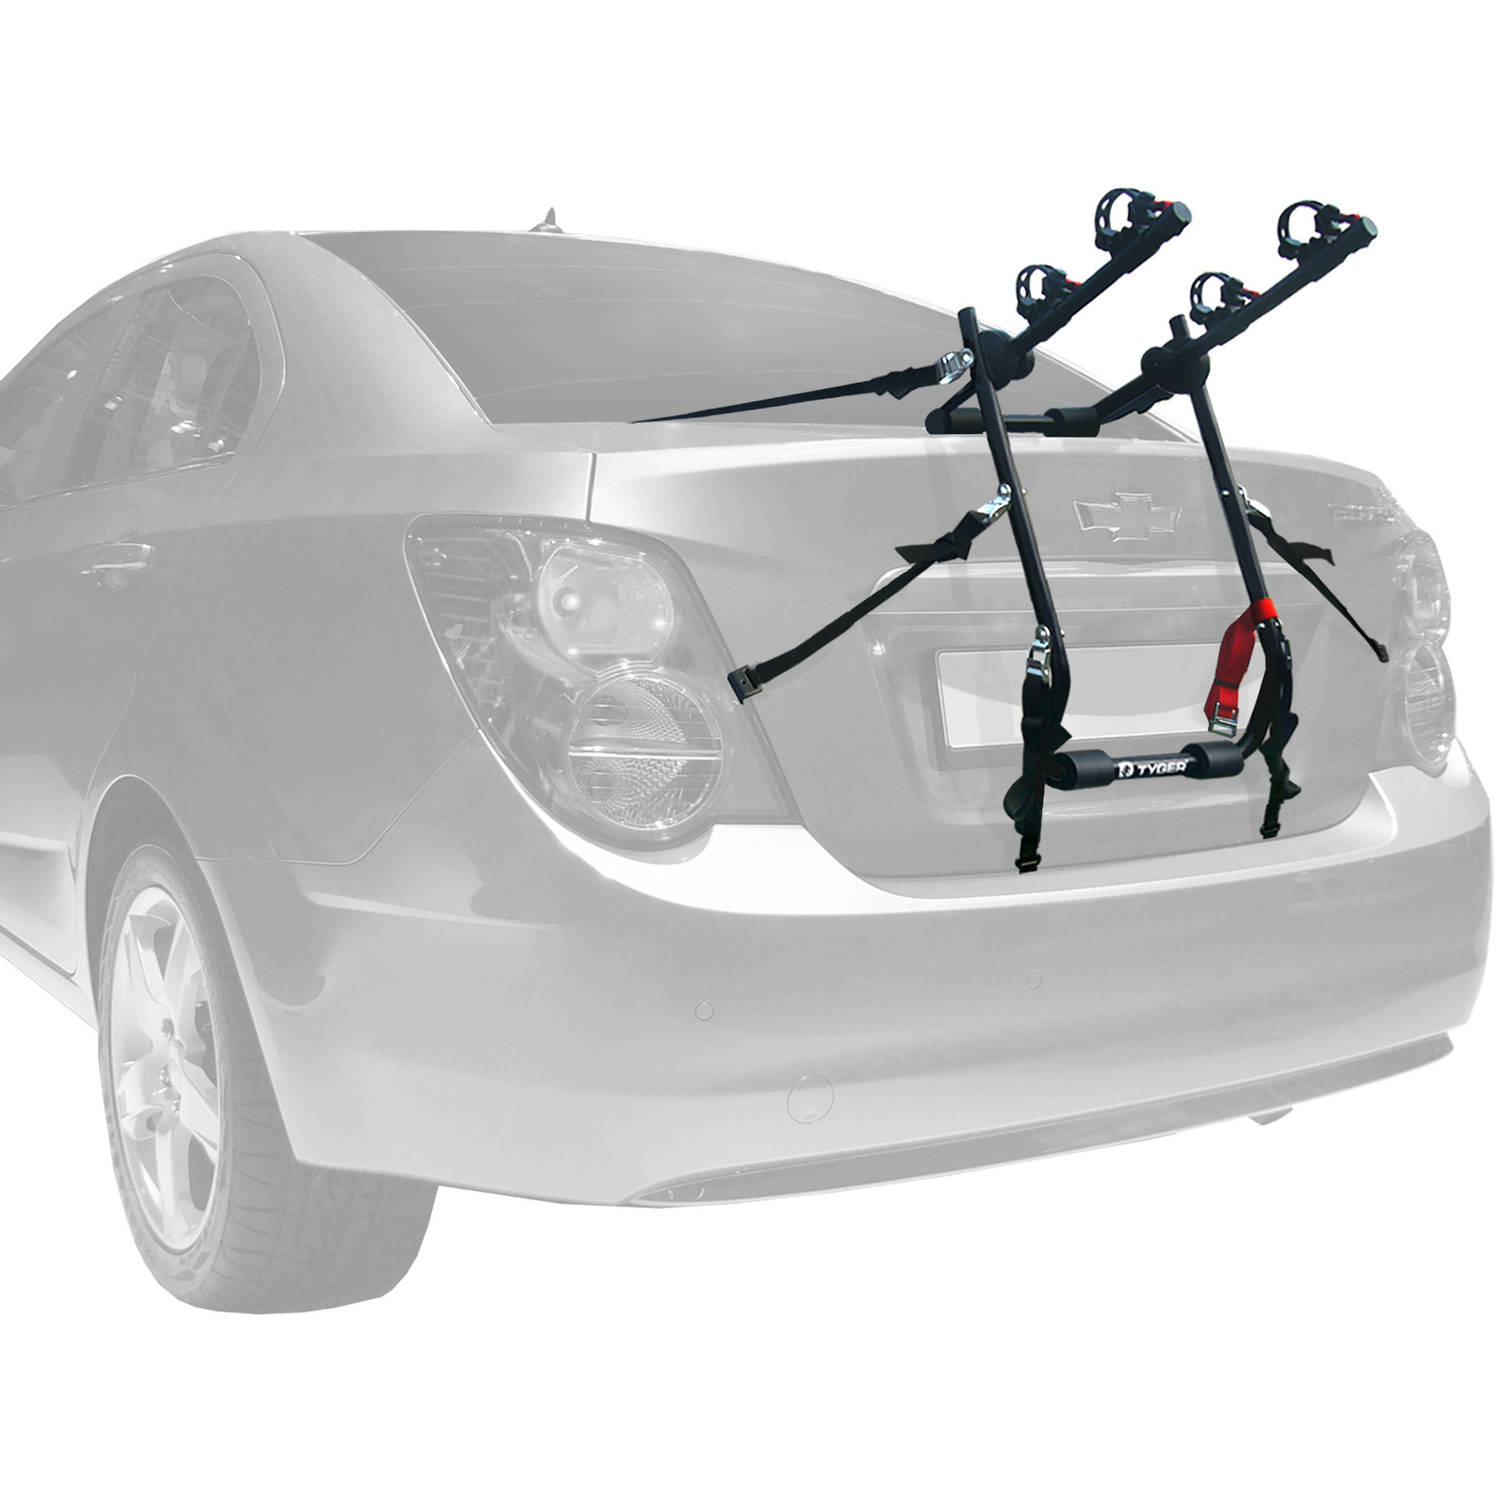 TYGER Deluxe Trunk Mount 2-Bike Carrier Rack for Sedan/Hatchback/SUV/Van, Black